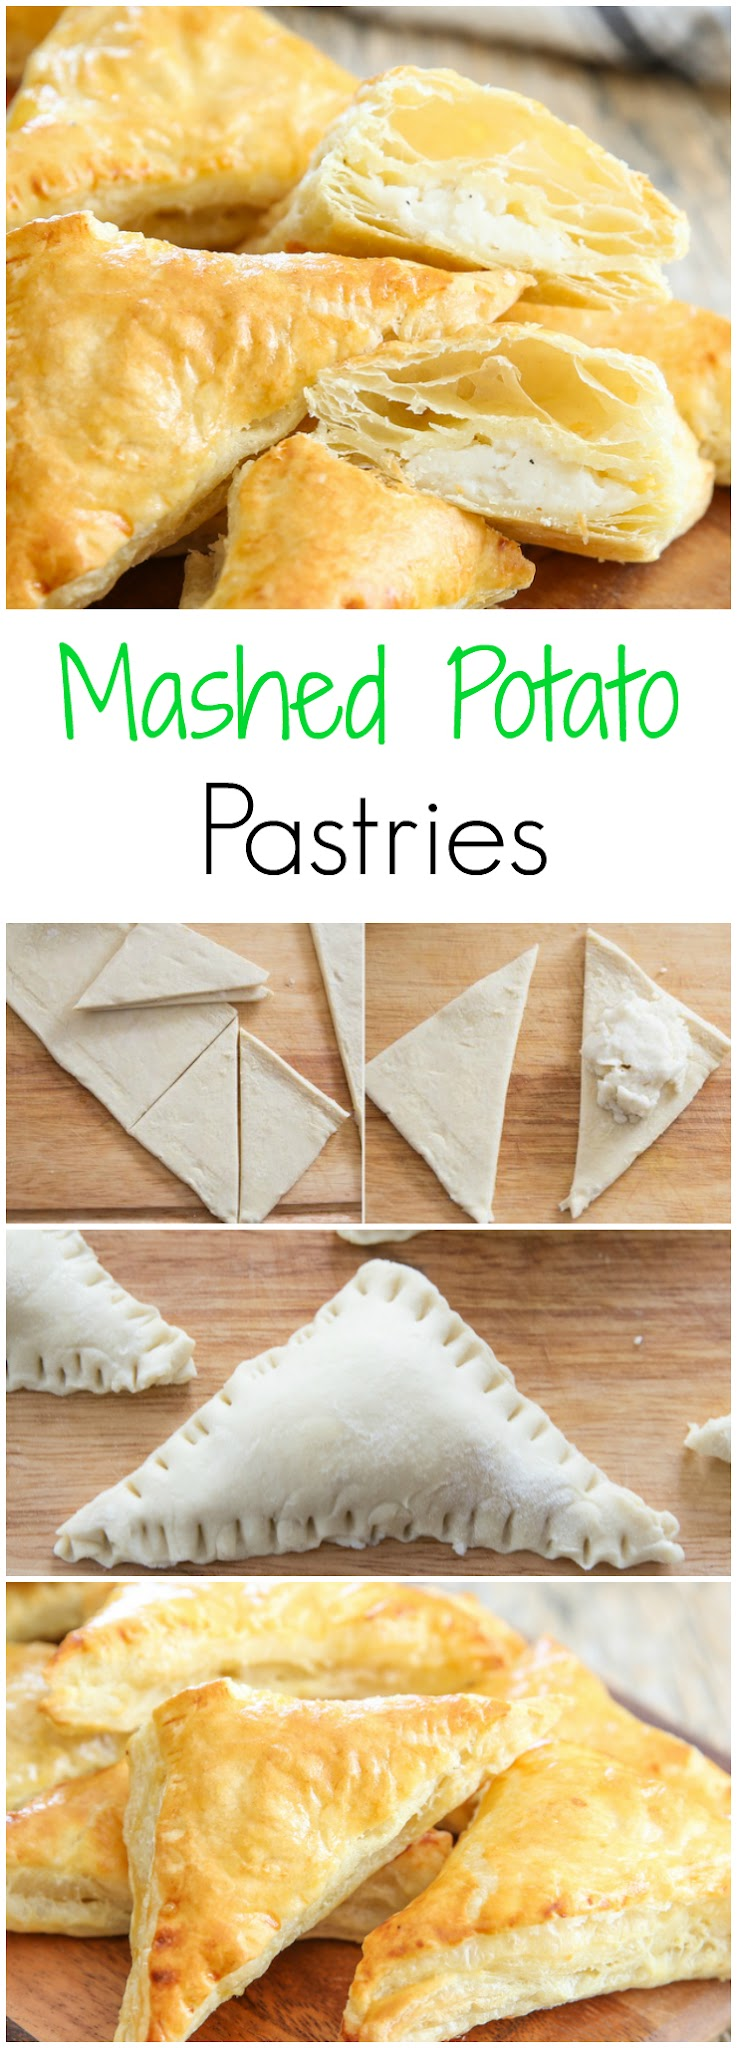 mashed potato pastries photo collage